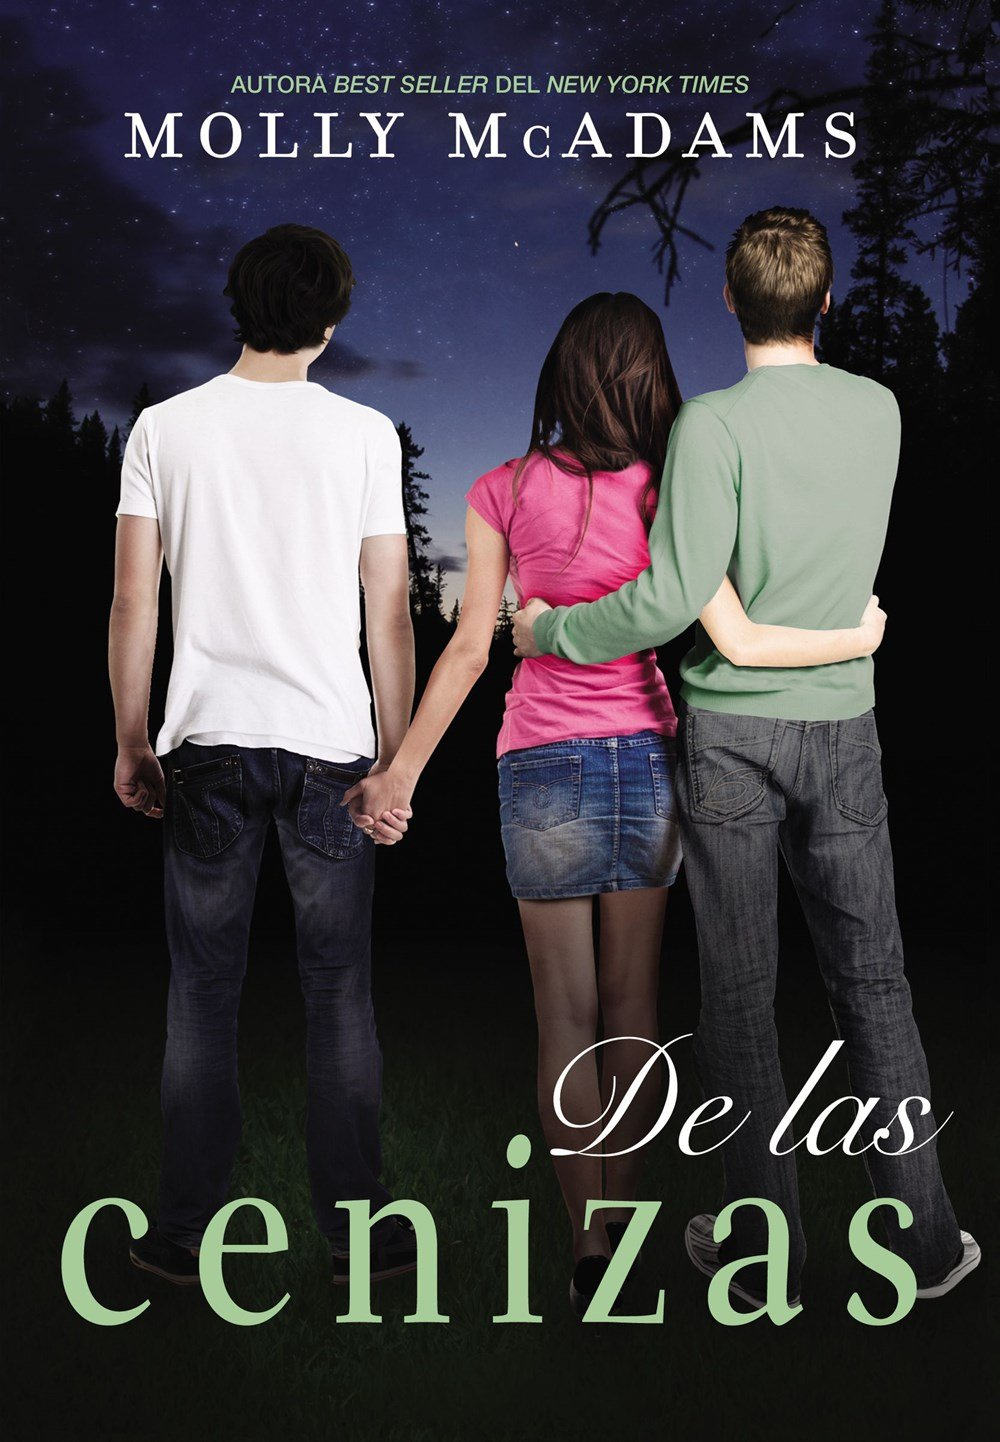 De las cenizas (Spanish Edition): Molly McAdams: 9780718080181: Amazon.com: Books